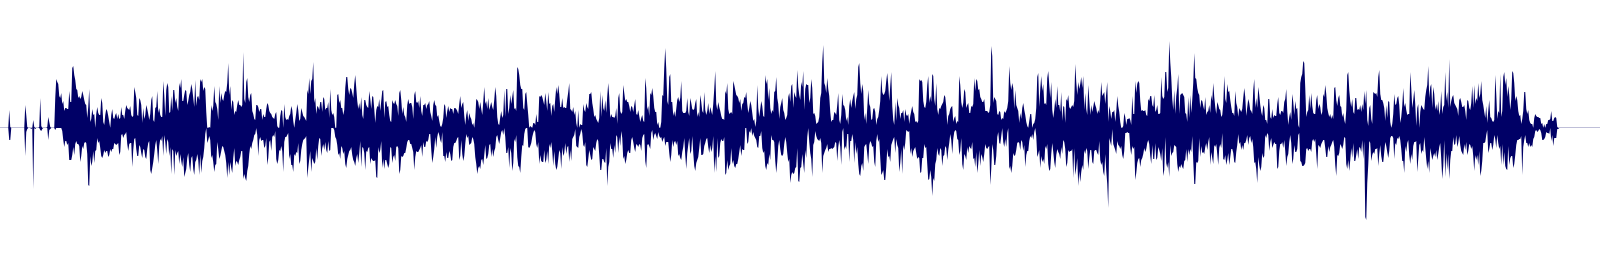 waveform of track #92826